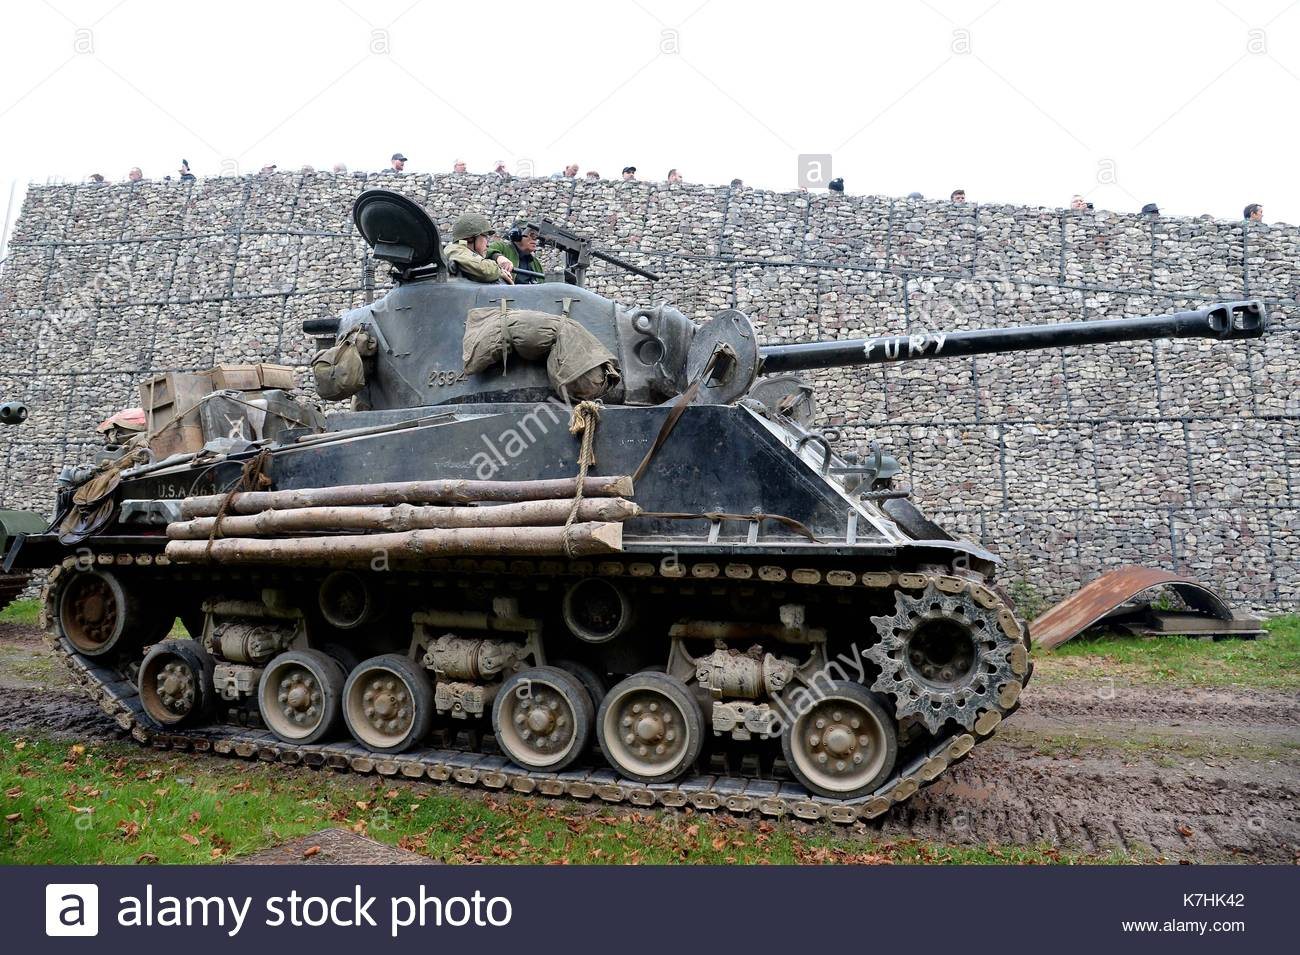 Click image for larger version  Name:demonstration-at-bovington-tank-museum-of-the-m4-sherman-from-the-K7HK42.jpg Views:23 Size:252.6 KB ID:2254710